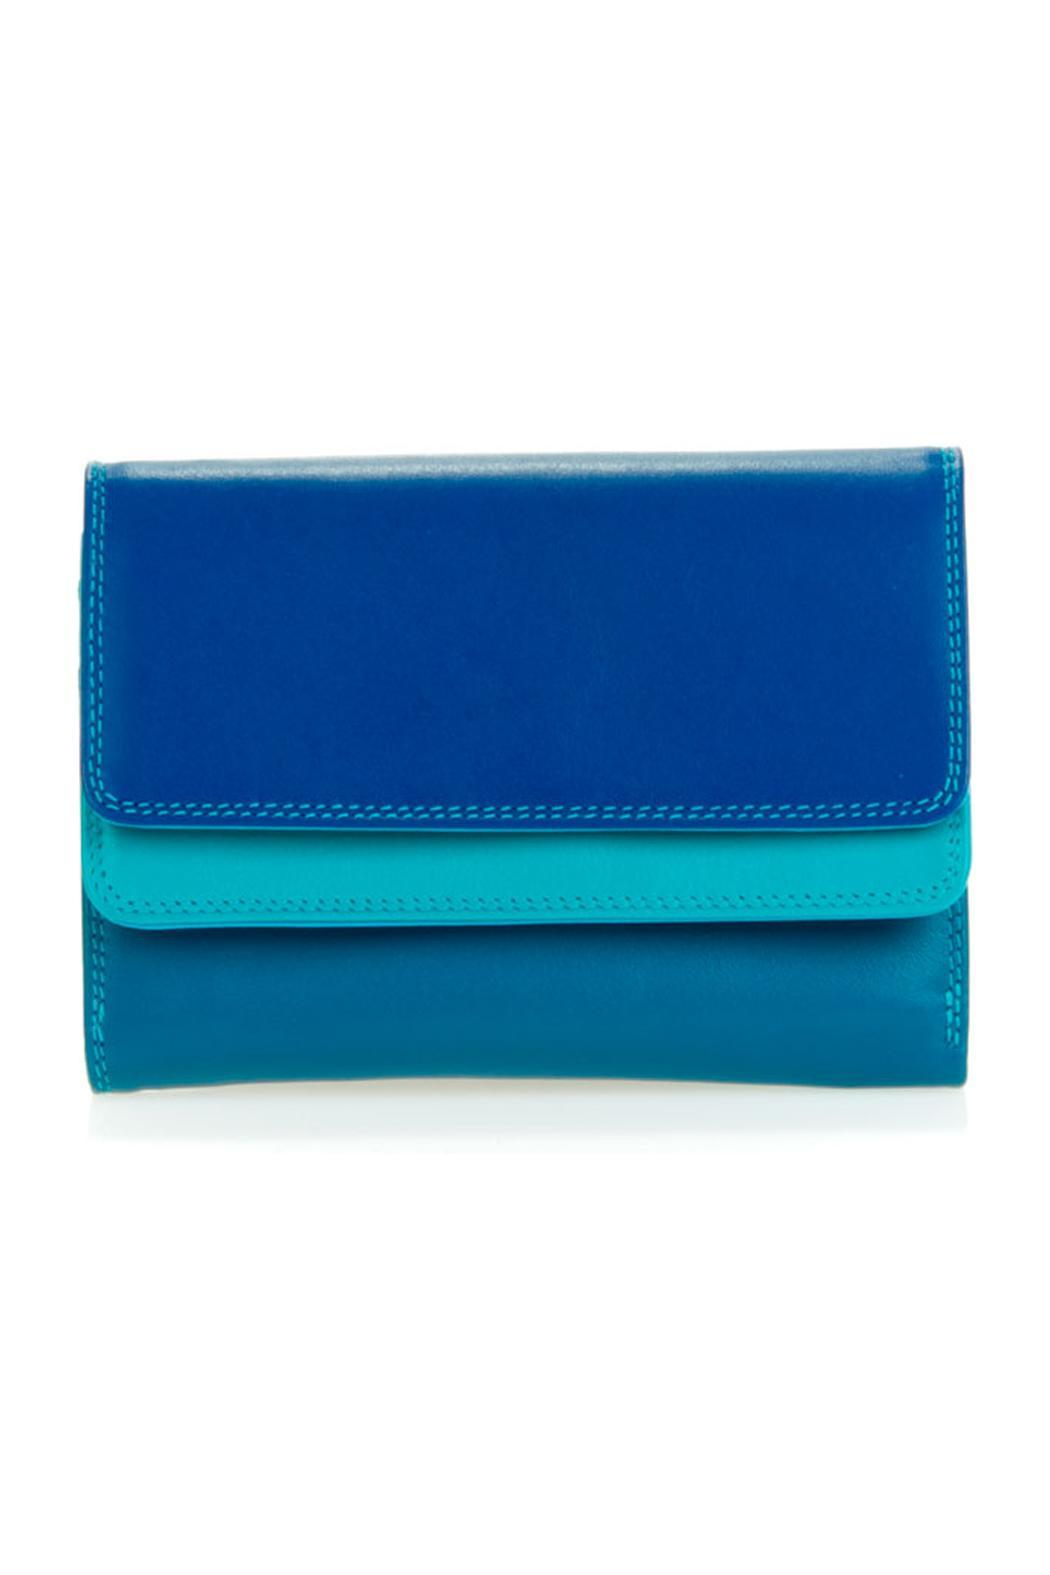 mywalit Double Flap Purse/Wallet - Main Image